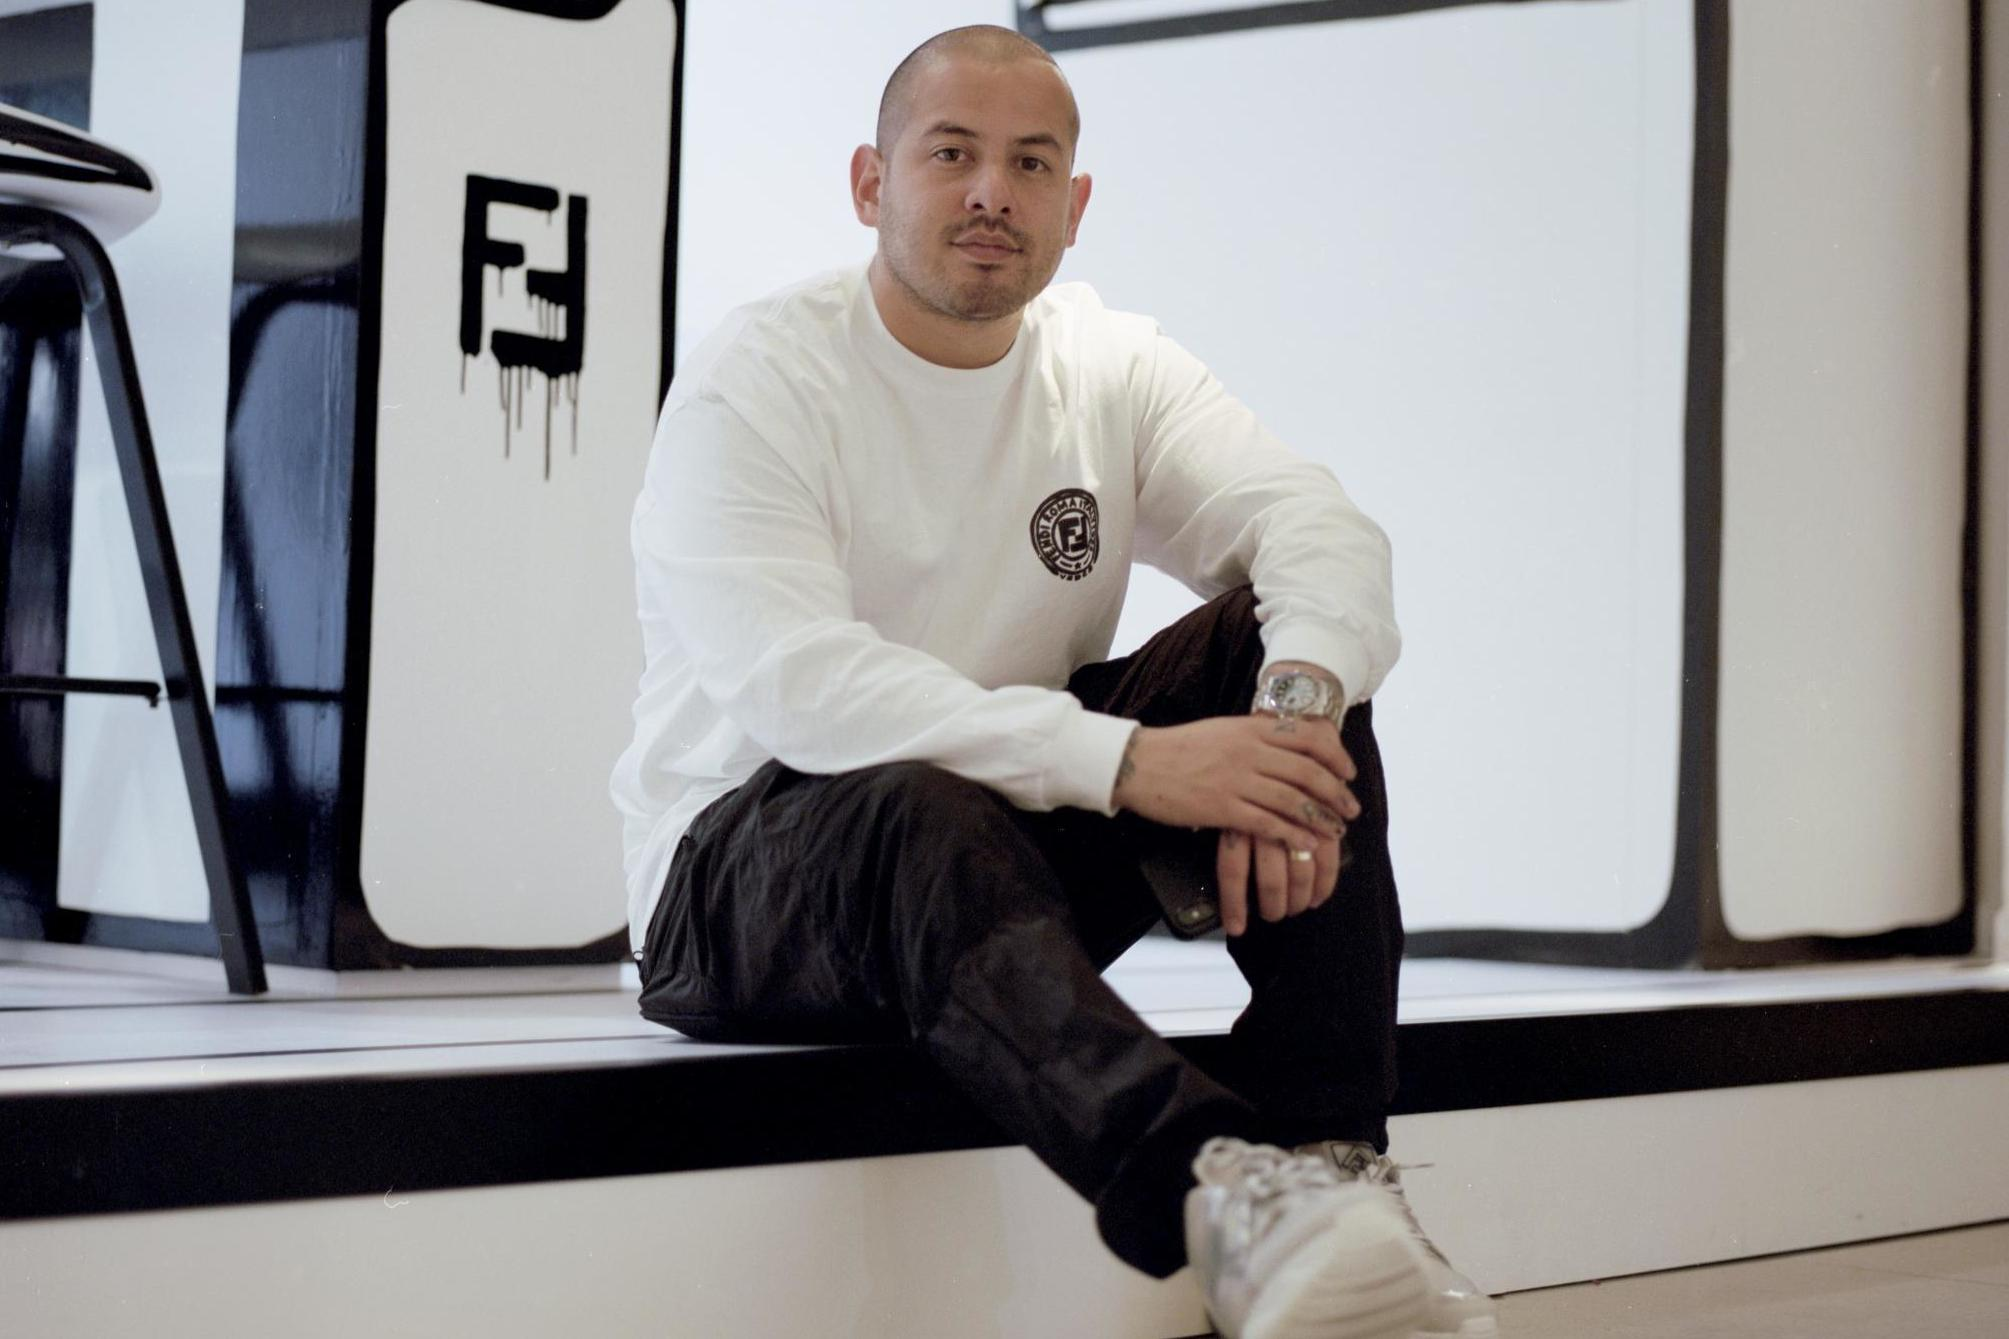 Joshua Vides in 2019 working on a Fendi project.